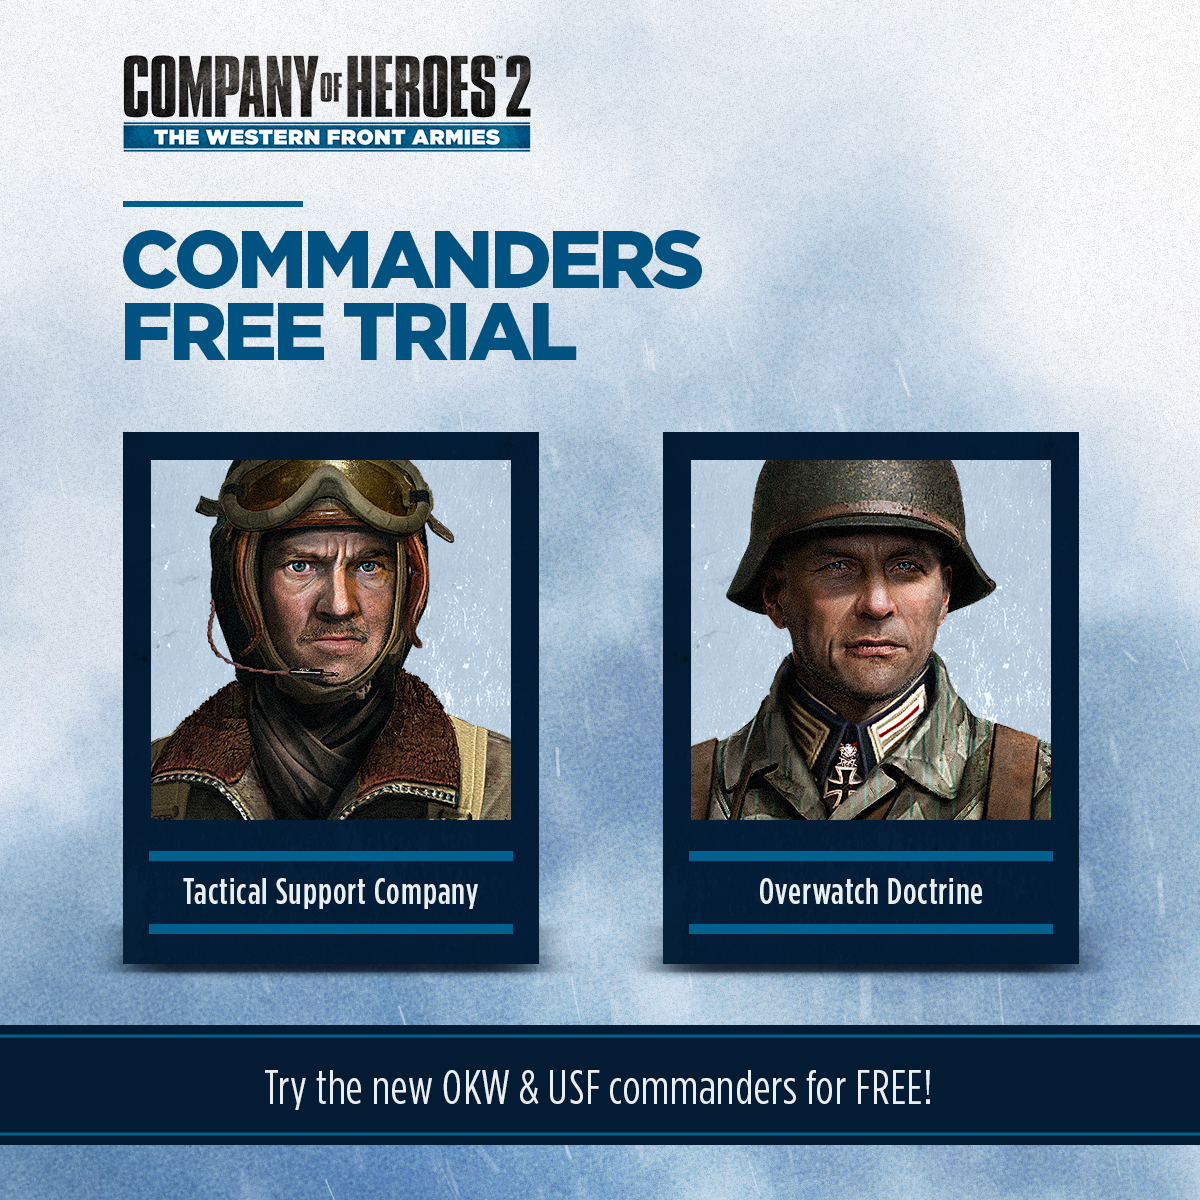 company of heroes 2 free commanders